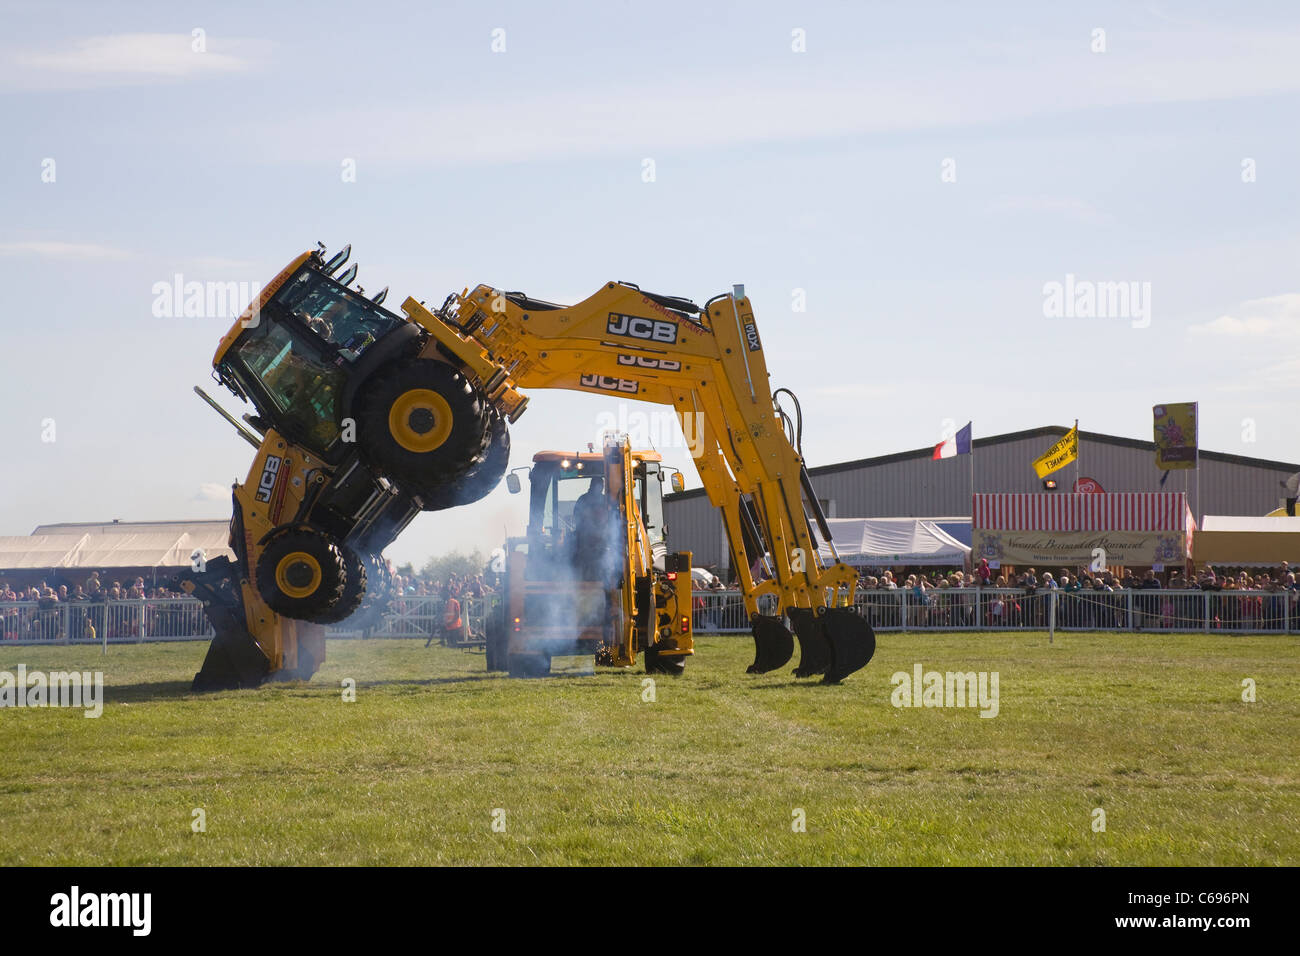 North Wales Demonstration showing the versatility of JCB diggers in showground of agricultural show small vehicle - Stock Image